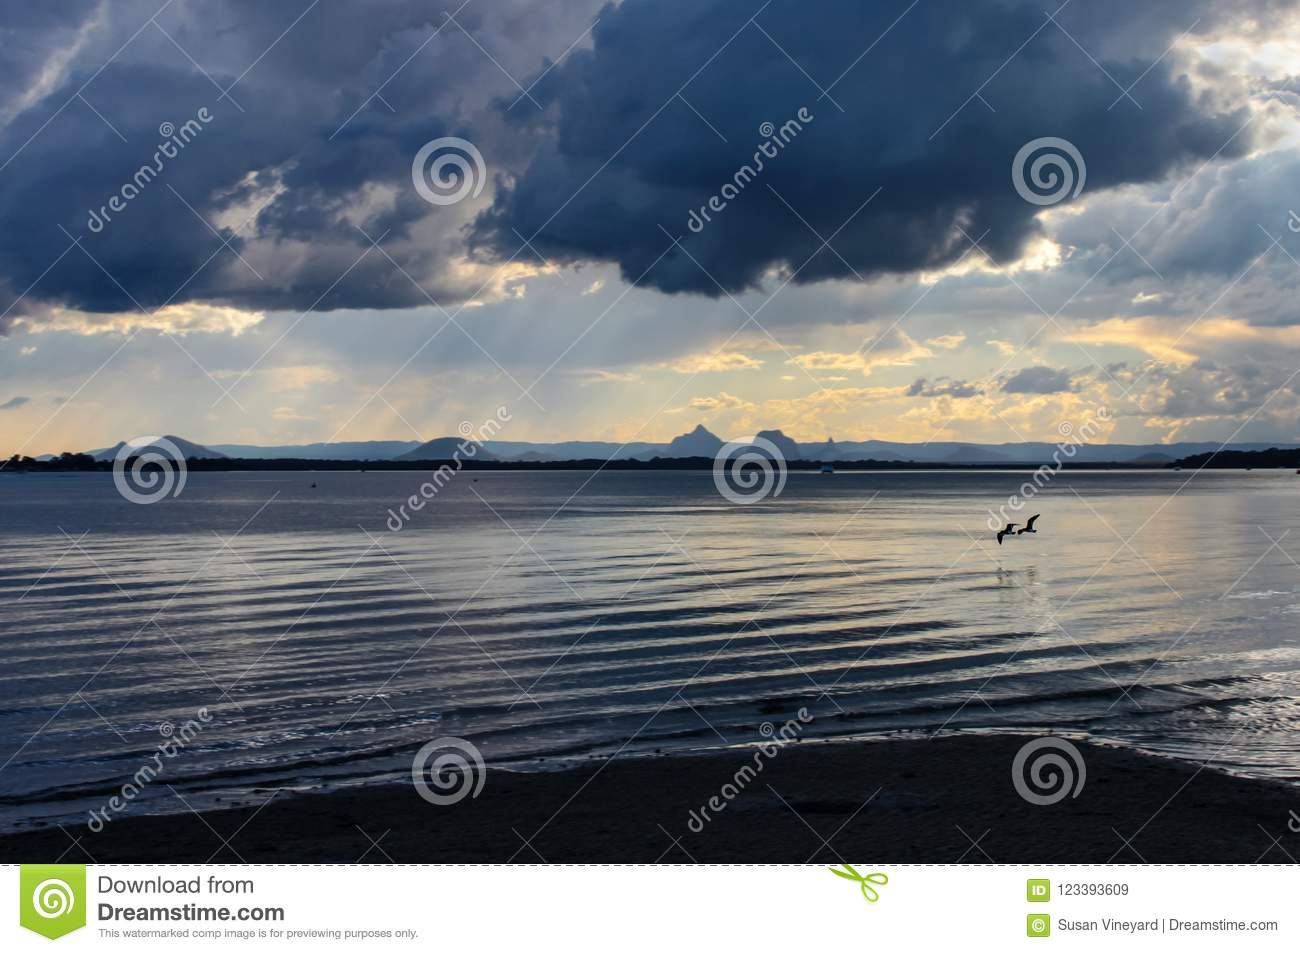 Two birds flying low over the water near sunset under a dramatic ominous sky will rain falling on the distant mountains - Bribie I